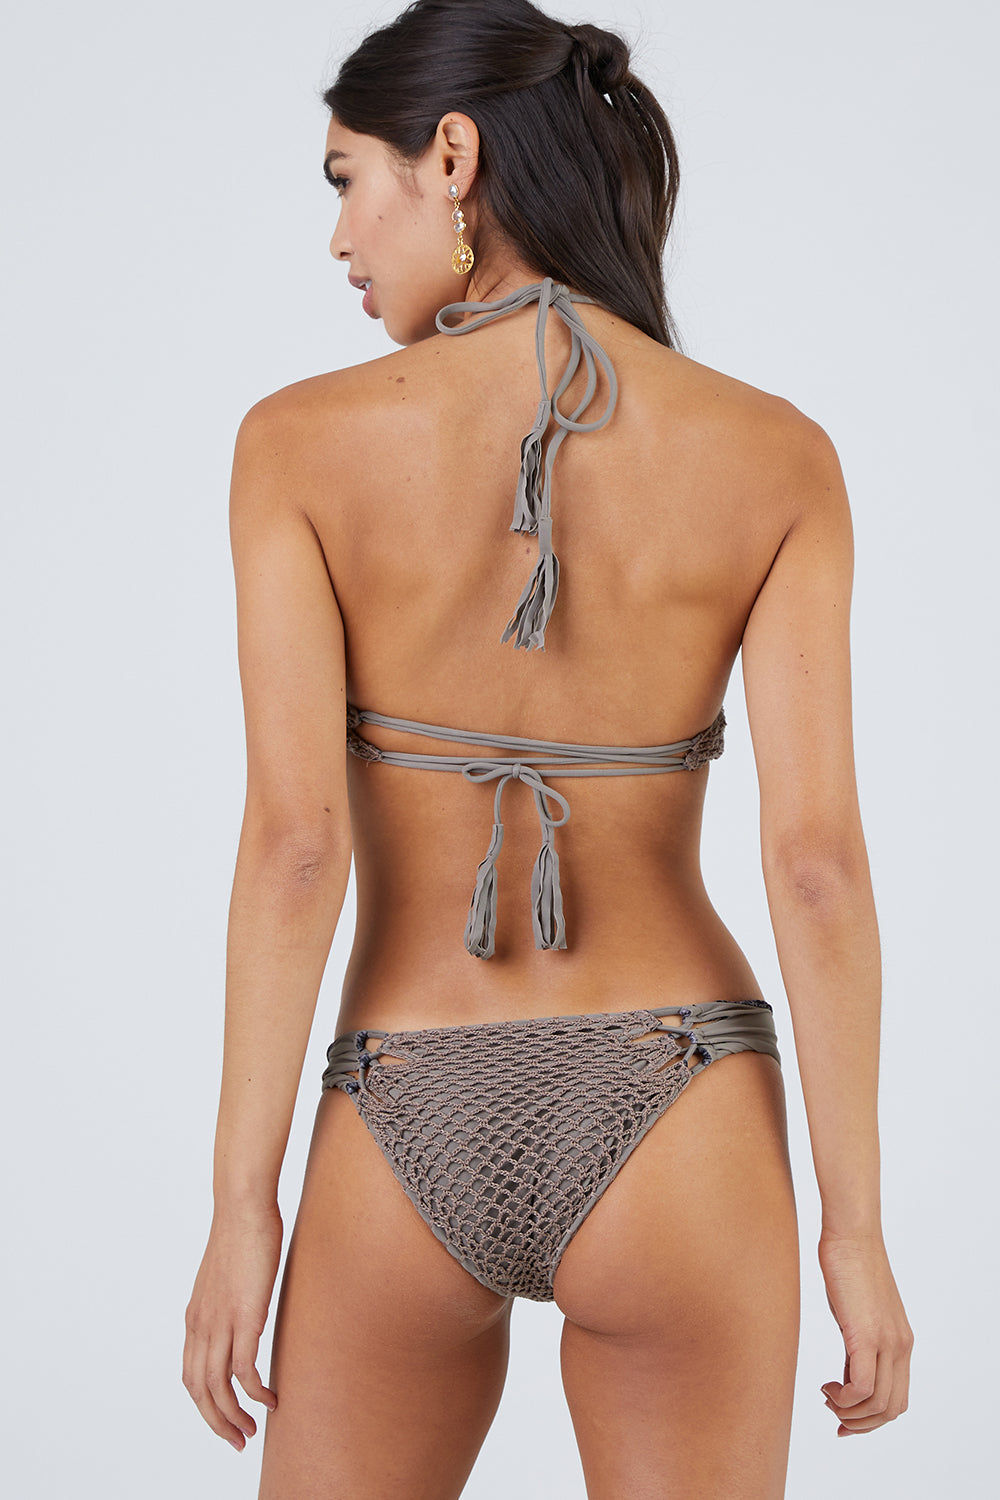 ACACIA Lei High Neck Crochet Bikini Top - Cement Bikini Top | Cement| Acacia Lei High Neck Top - Cement Front View High Neck Bikini Top  Ties at Neck  Lace Up Front  Lace Up Back Detail  Crochet Overlay Fabric